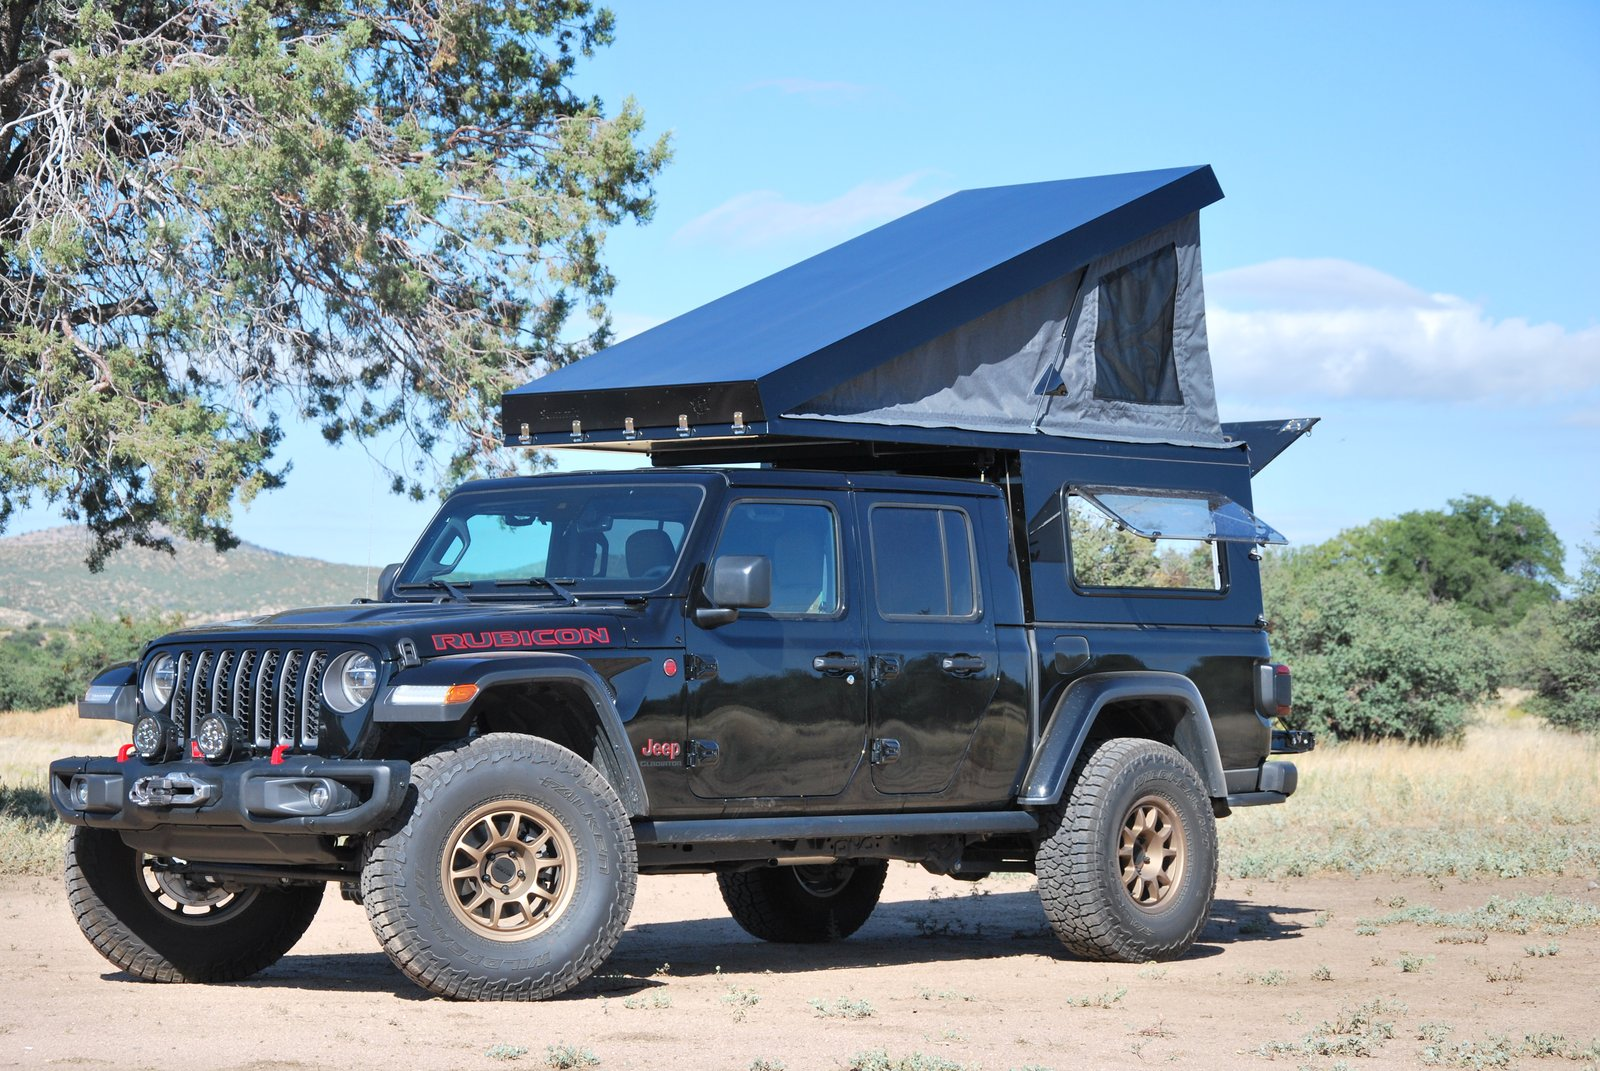 AT Overland Jeep Gladiator backcountry camper starts under $10K